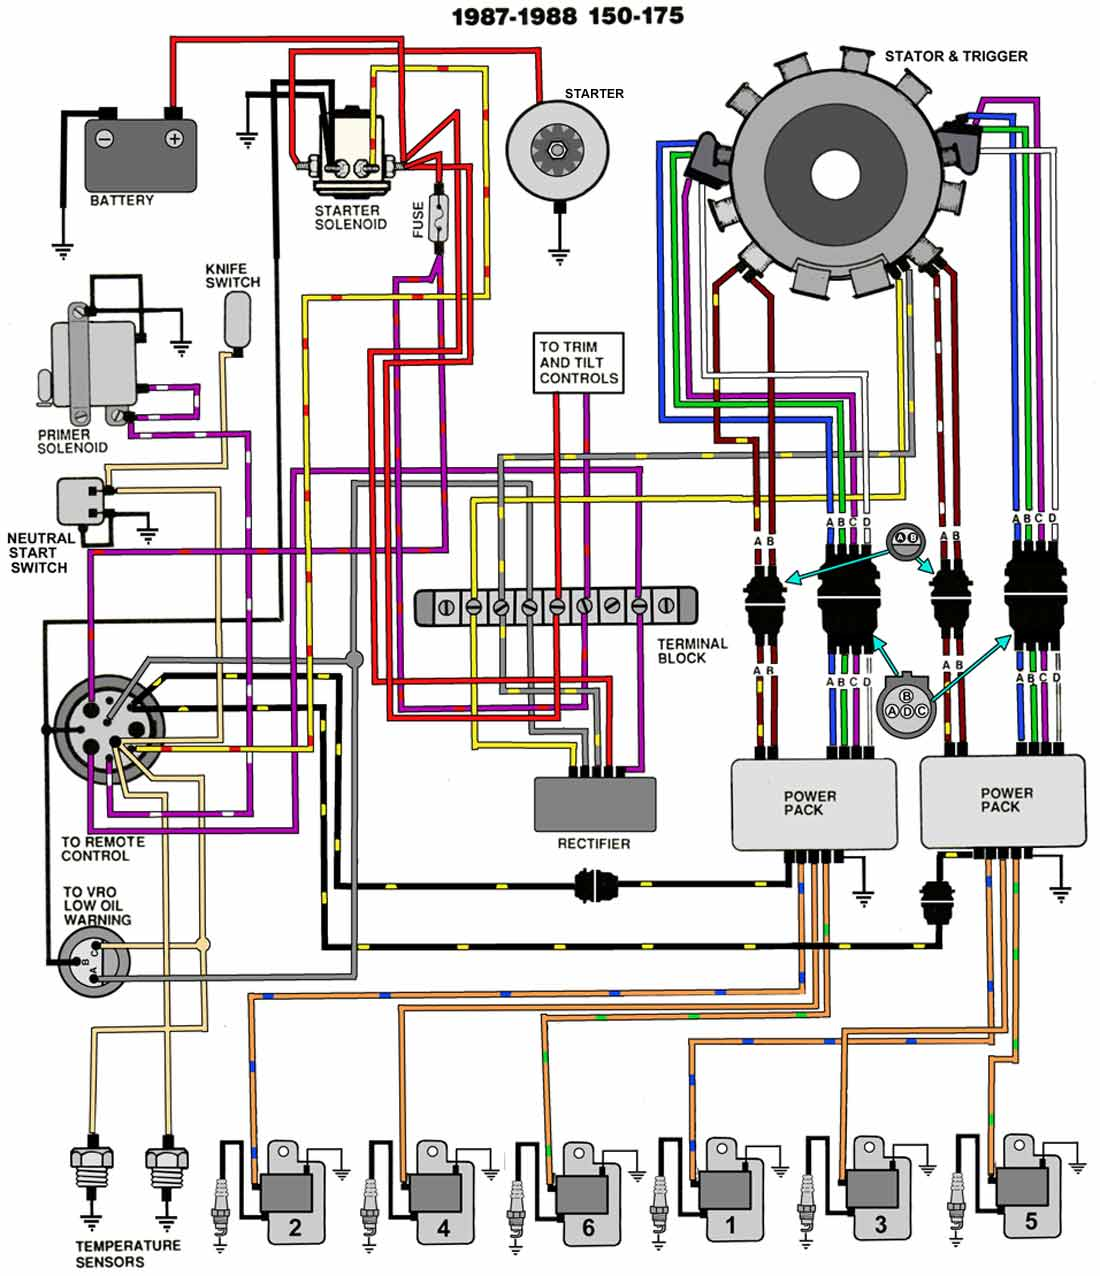 87_88_150_175 pdf] evinrude 88 spl manual (28 pages) evinrude 88 spl manual johnson outboard wiring schematic at crackthecode.co